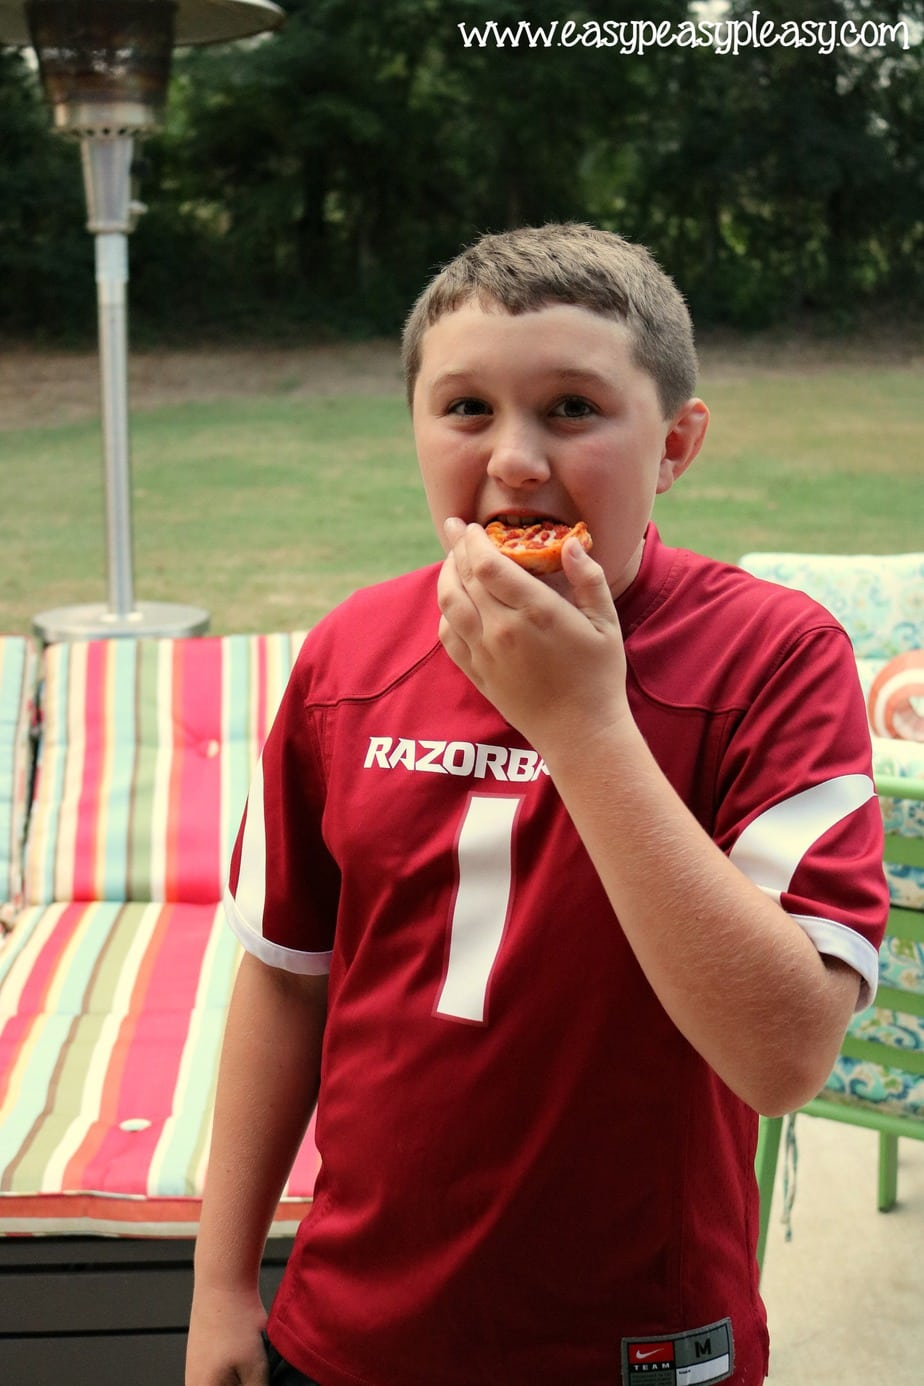 Kid approved food for game day!